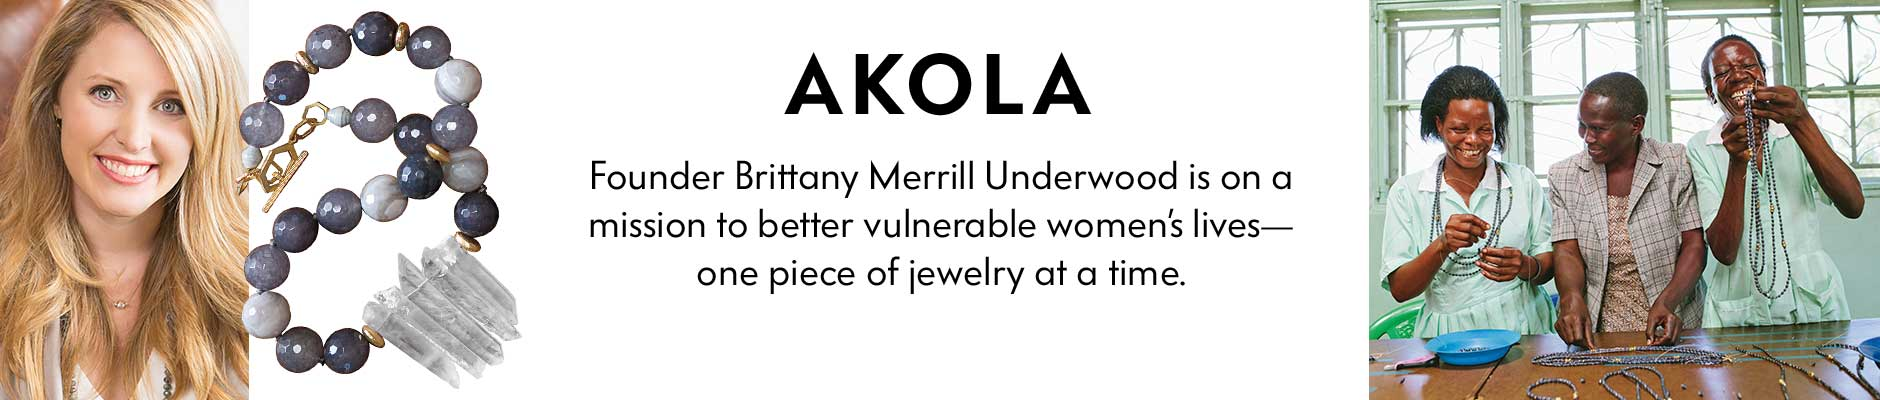 Akola - Founder Brittany Merrill Underwood is on a mission to better vulnerable women???s lives&-one piece of jewelry at a time.